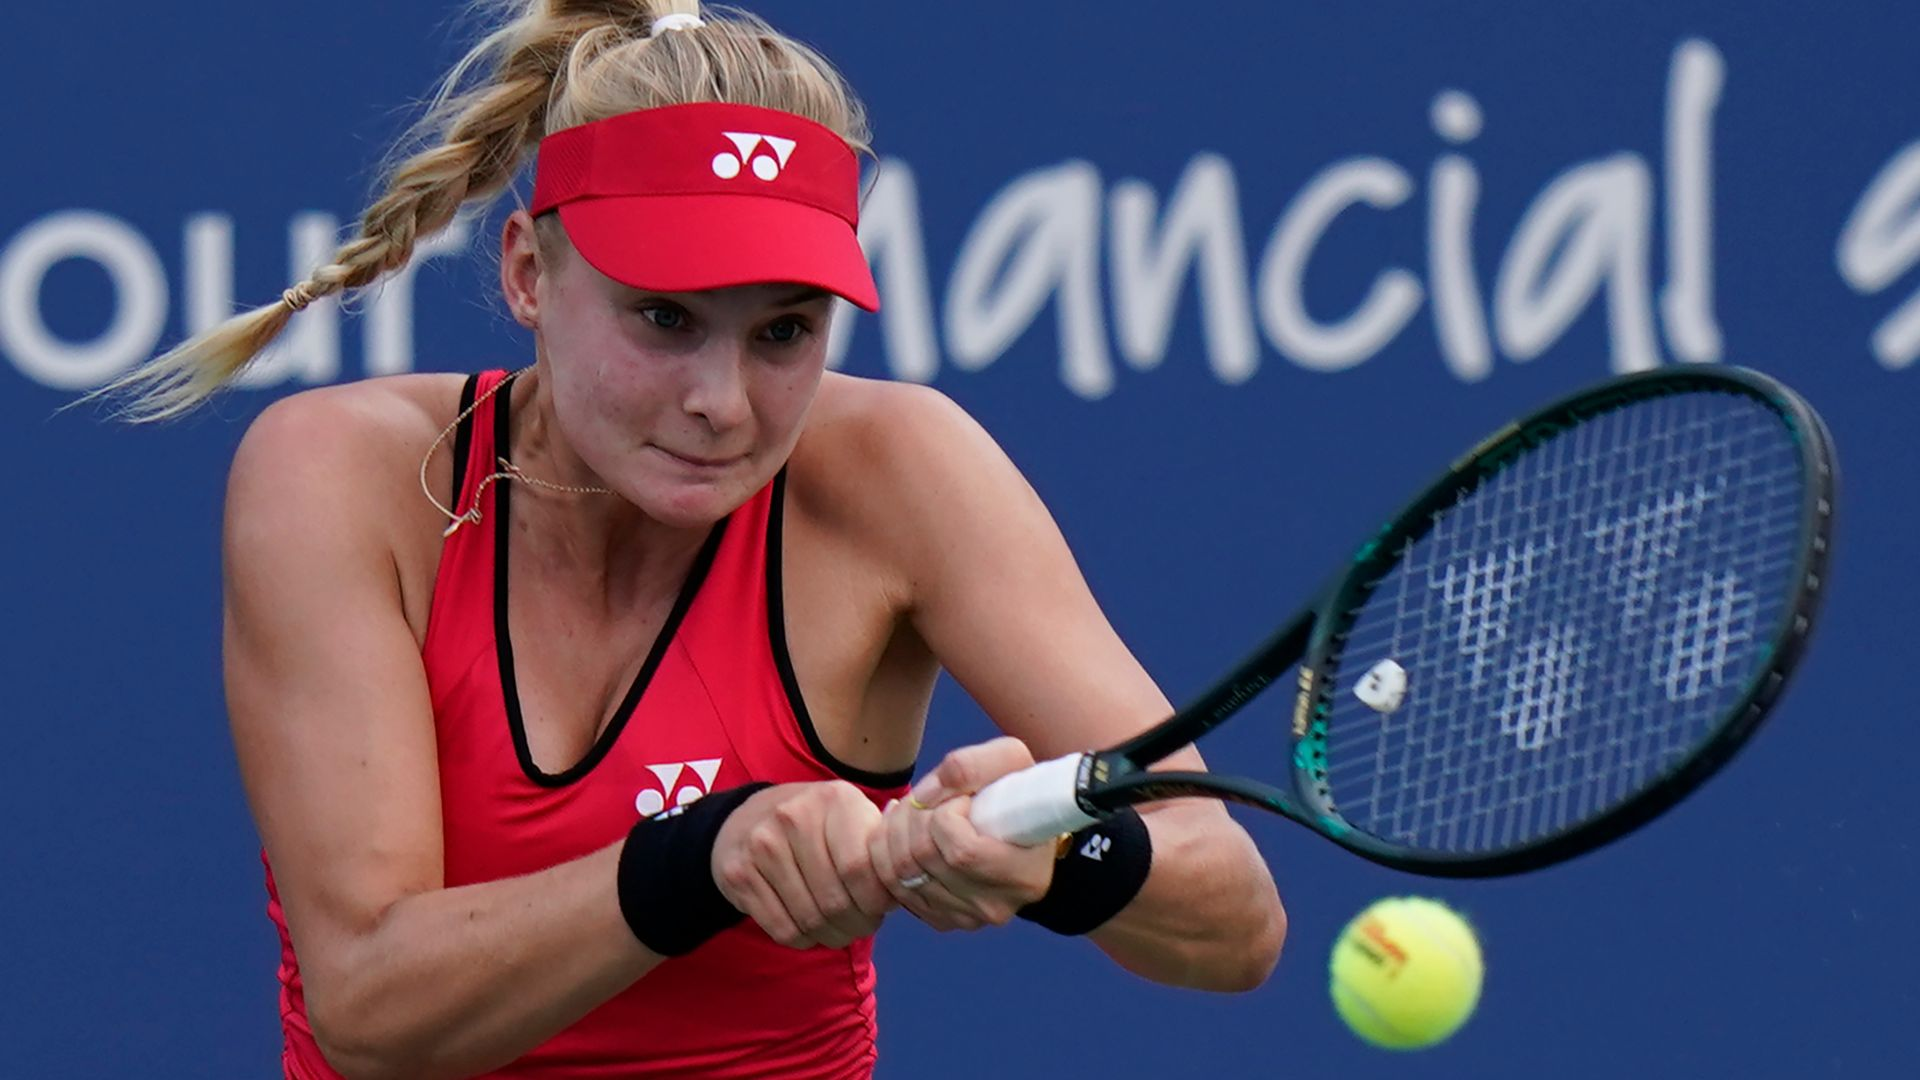 Yastremska appeals to CAS over doping ban - sky sports